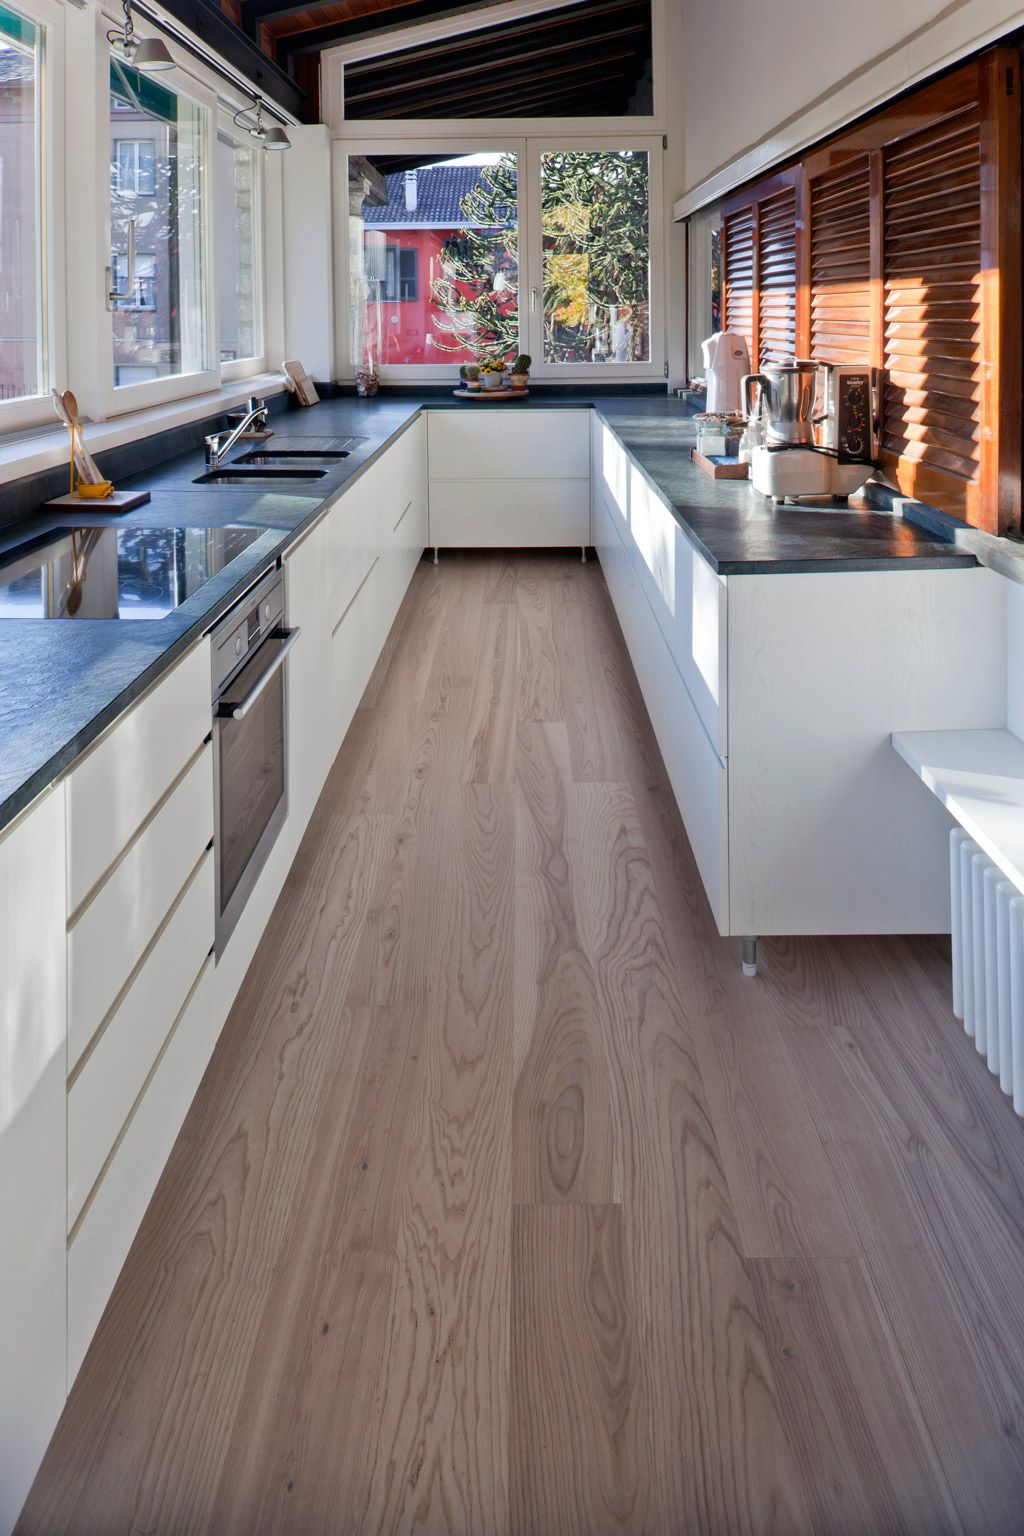 These lovely Hardwood Floors are Engineered Ash that have